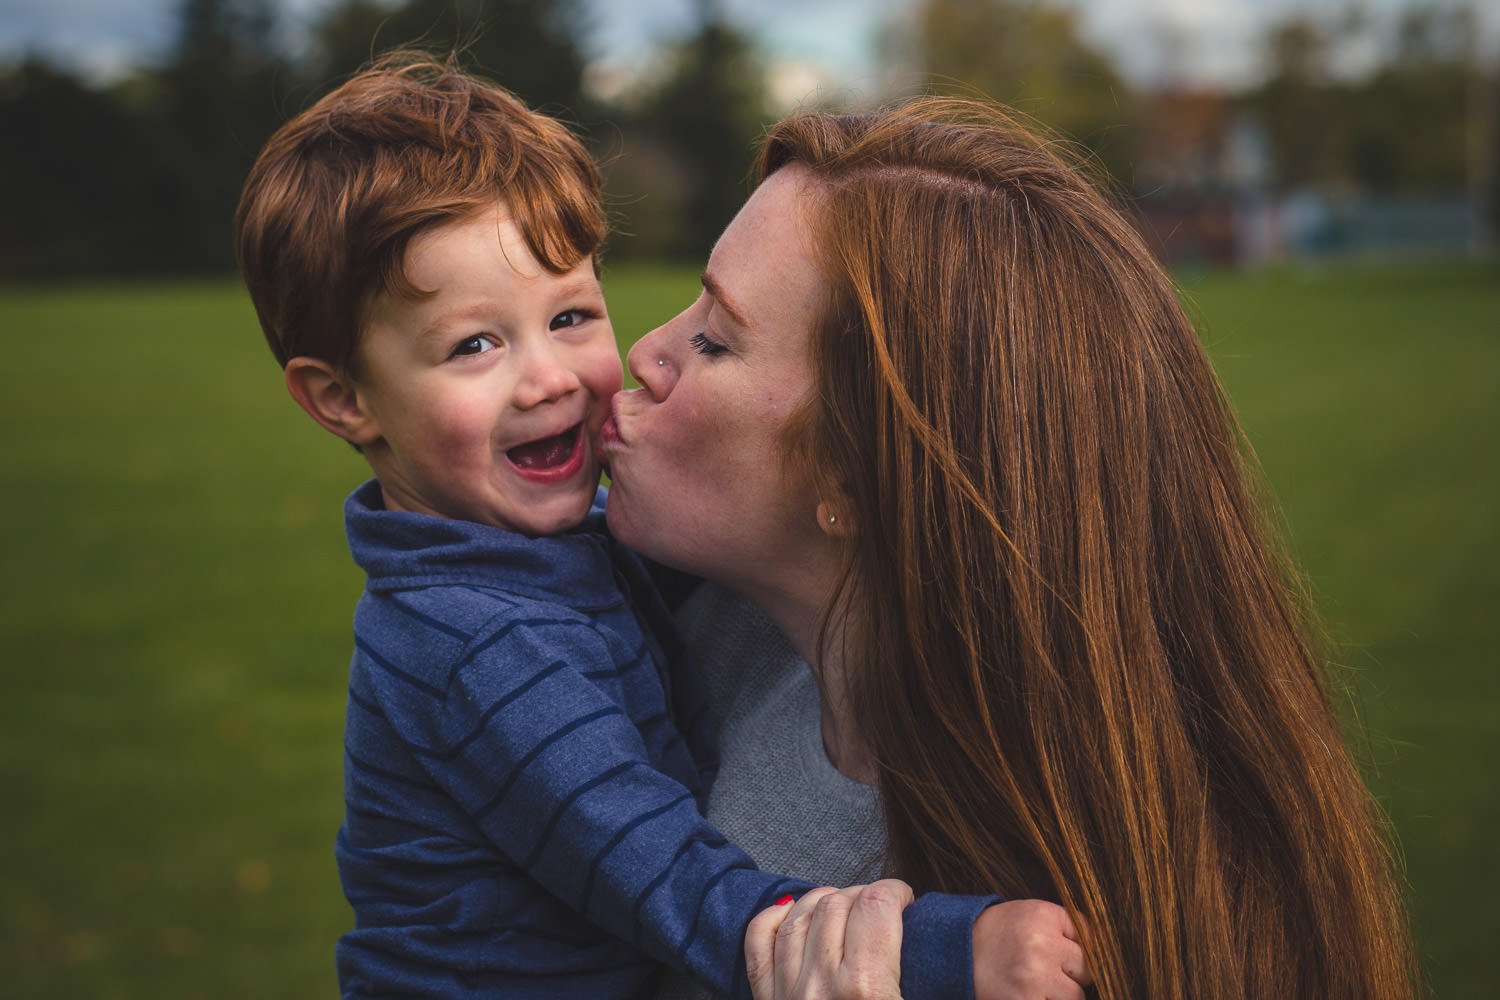 Mother gives son a kiss in the park